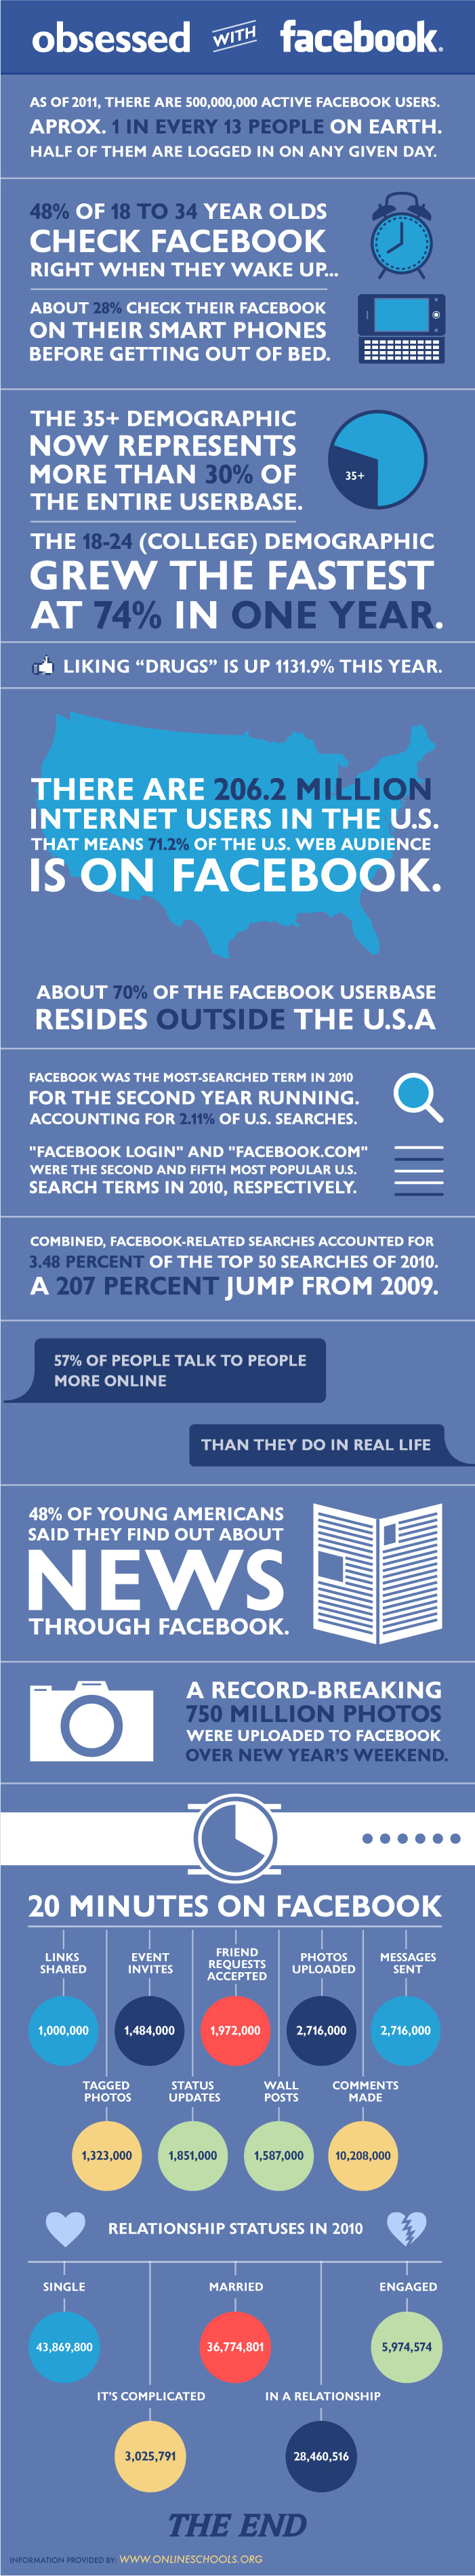 The Stats on Digg